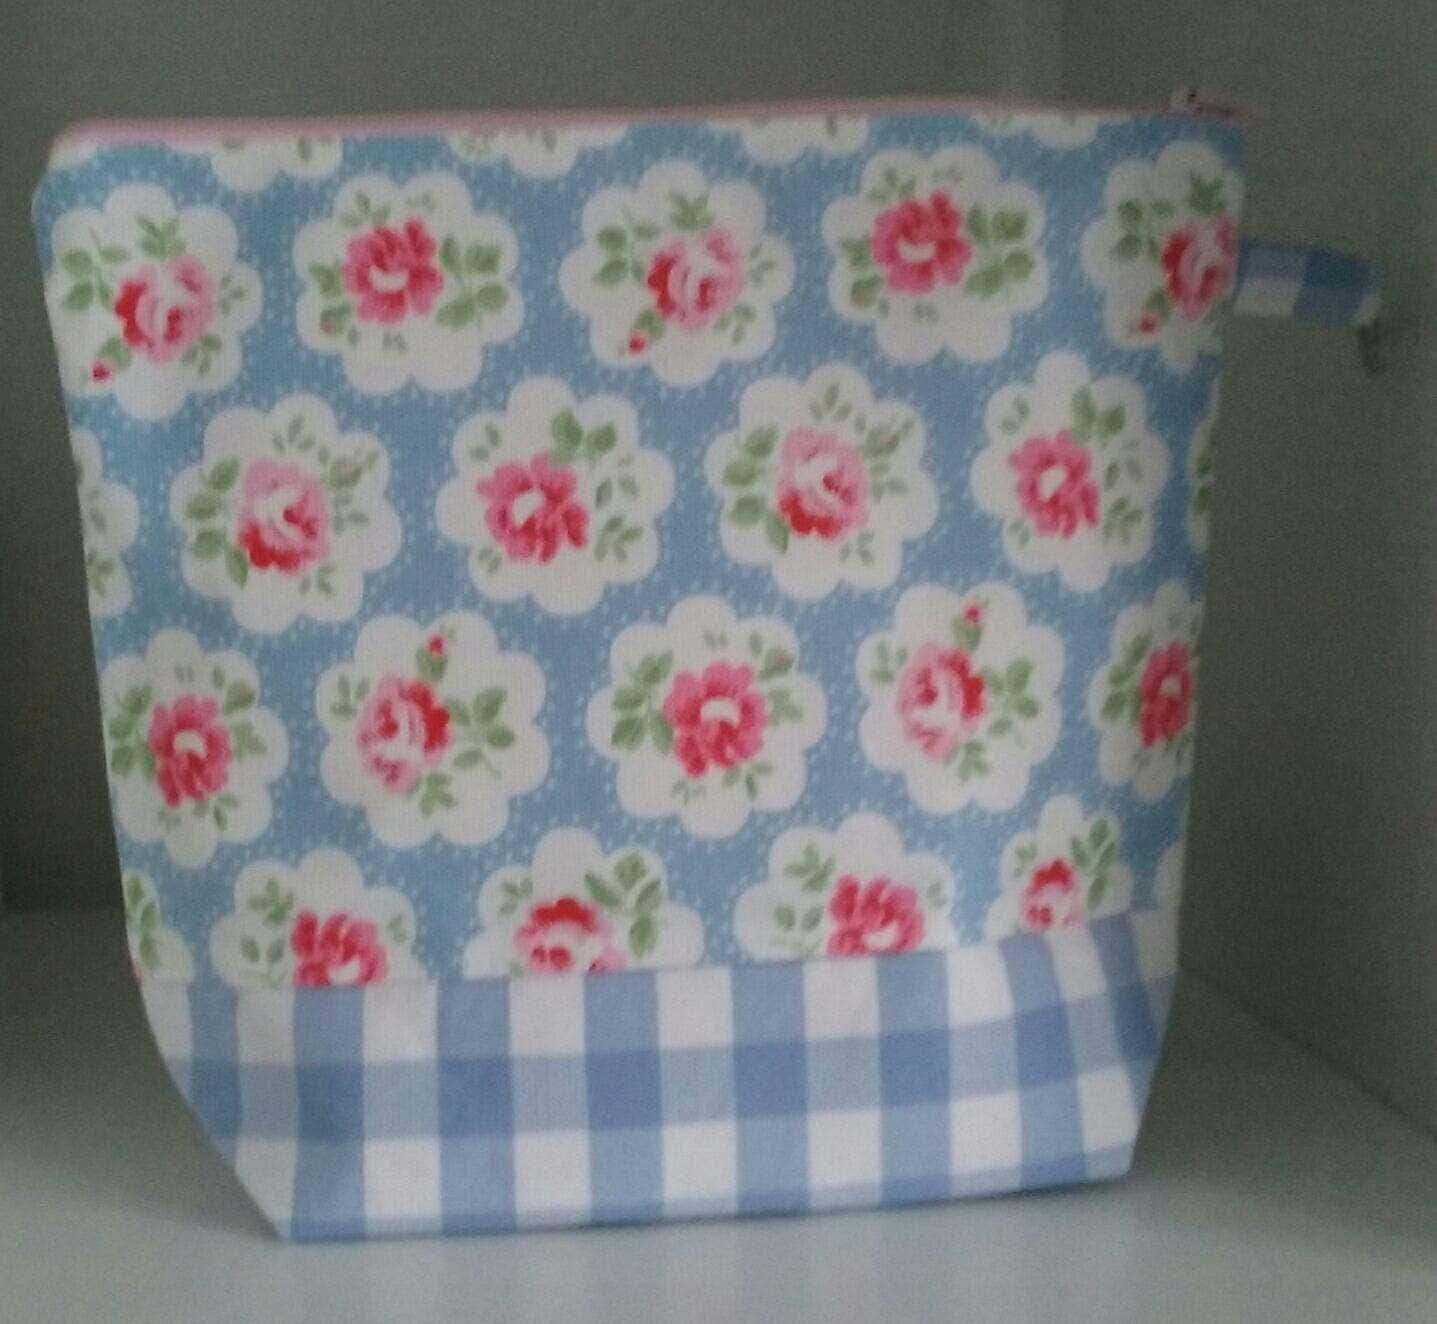 Cath Kidston Provence Rose cotton duck project bag perfect for sock knitting or similar small projects.